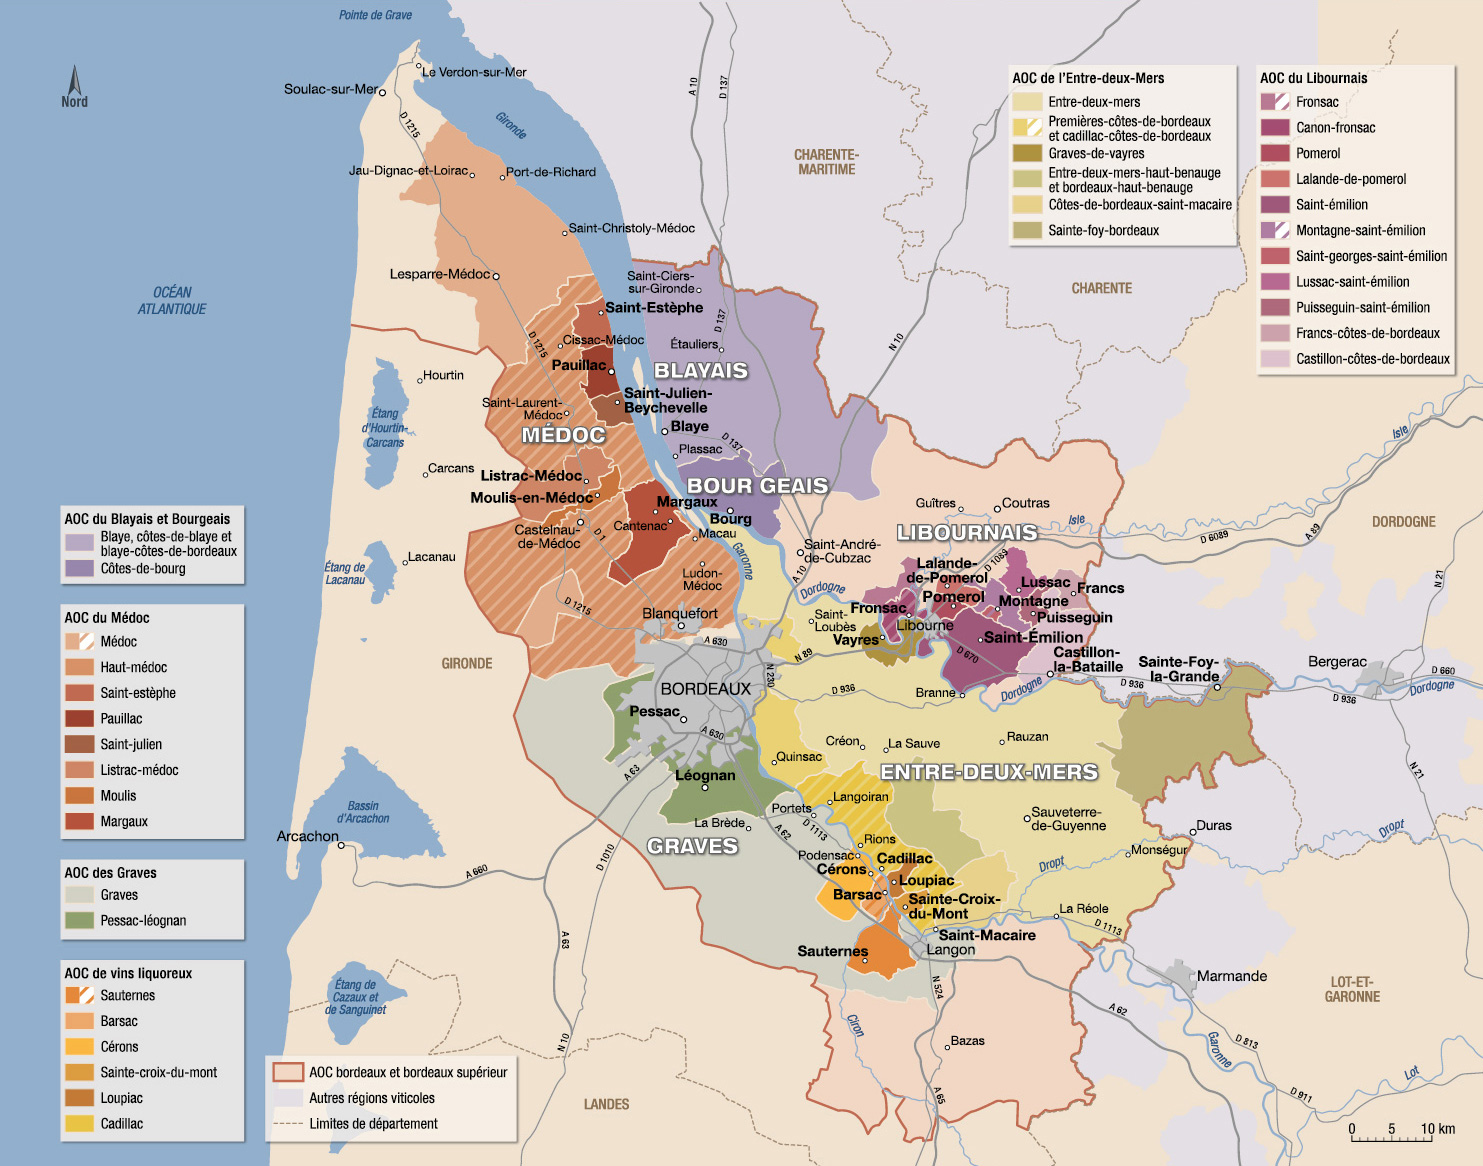 Carte Bordeaux Appellations.Vins Et Appellations Du Bordelais Guide Hachette Des Vins